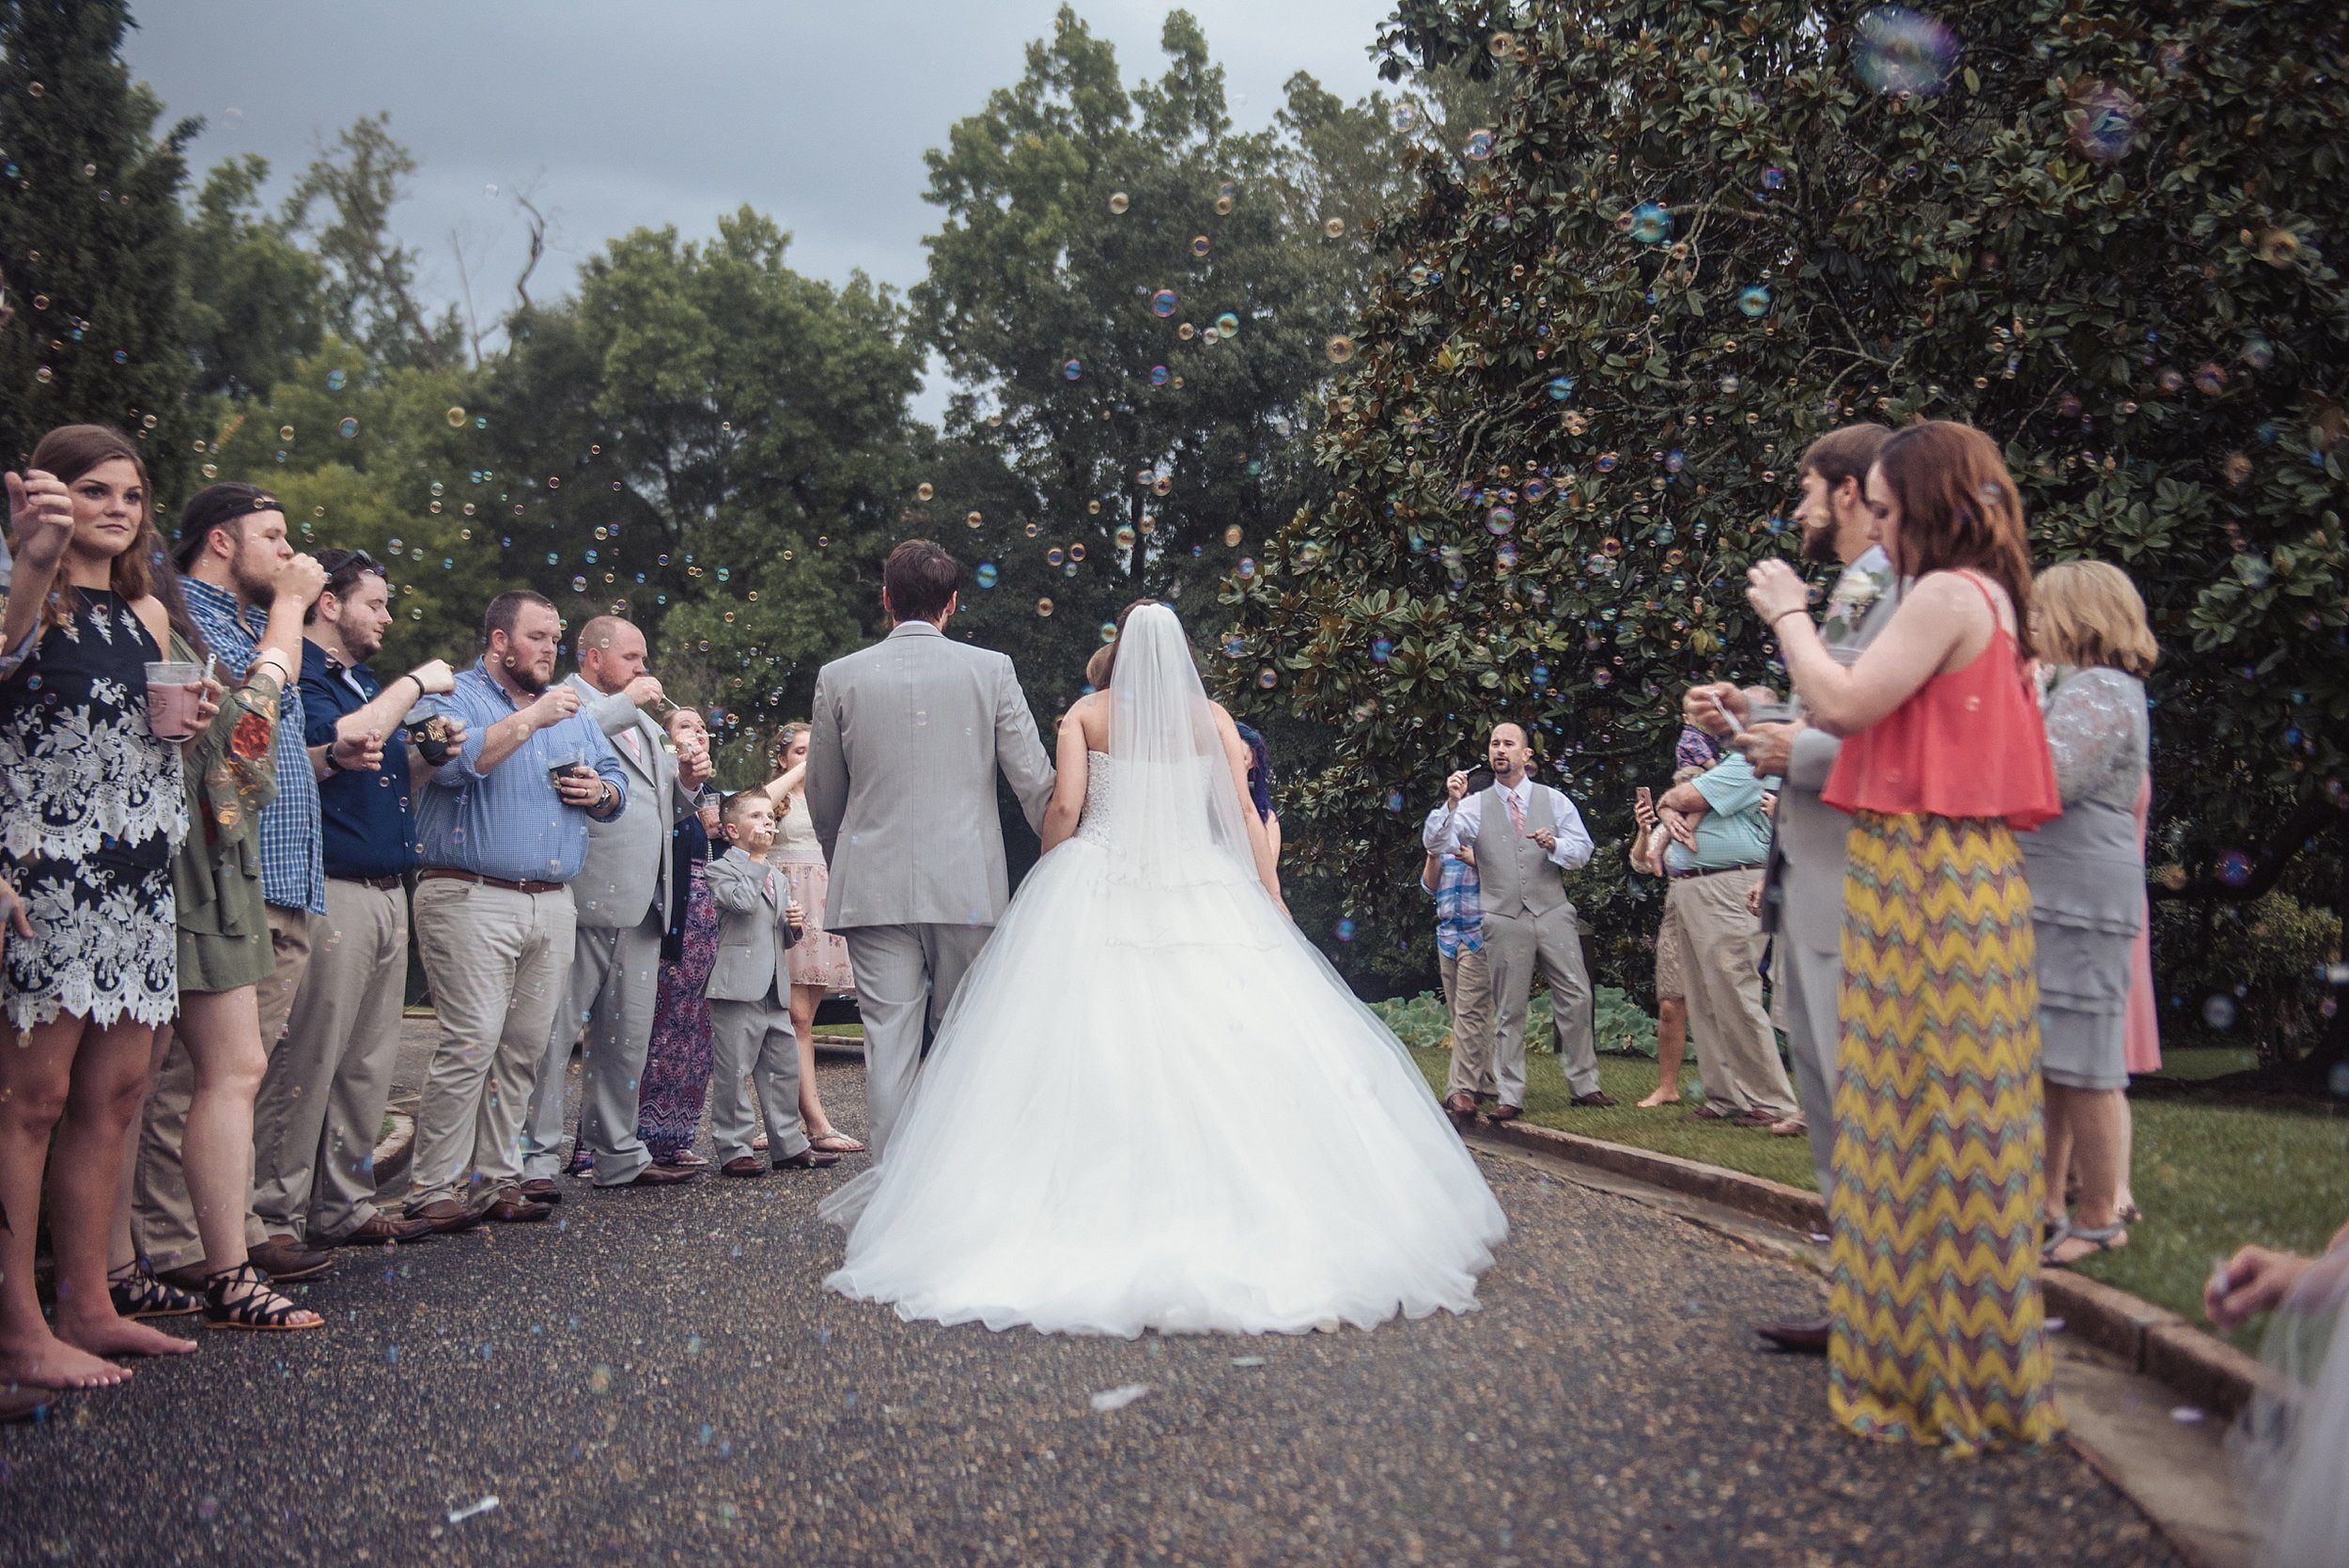 Bride and groom walk through bubbles as they exit their reception